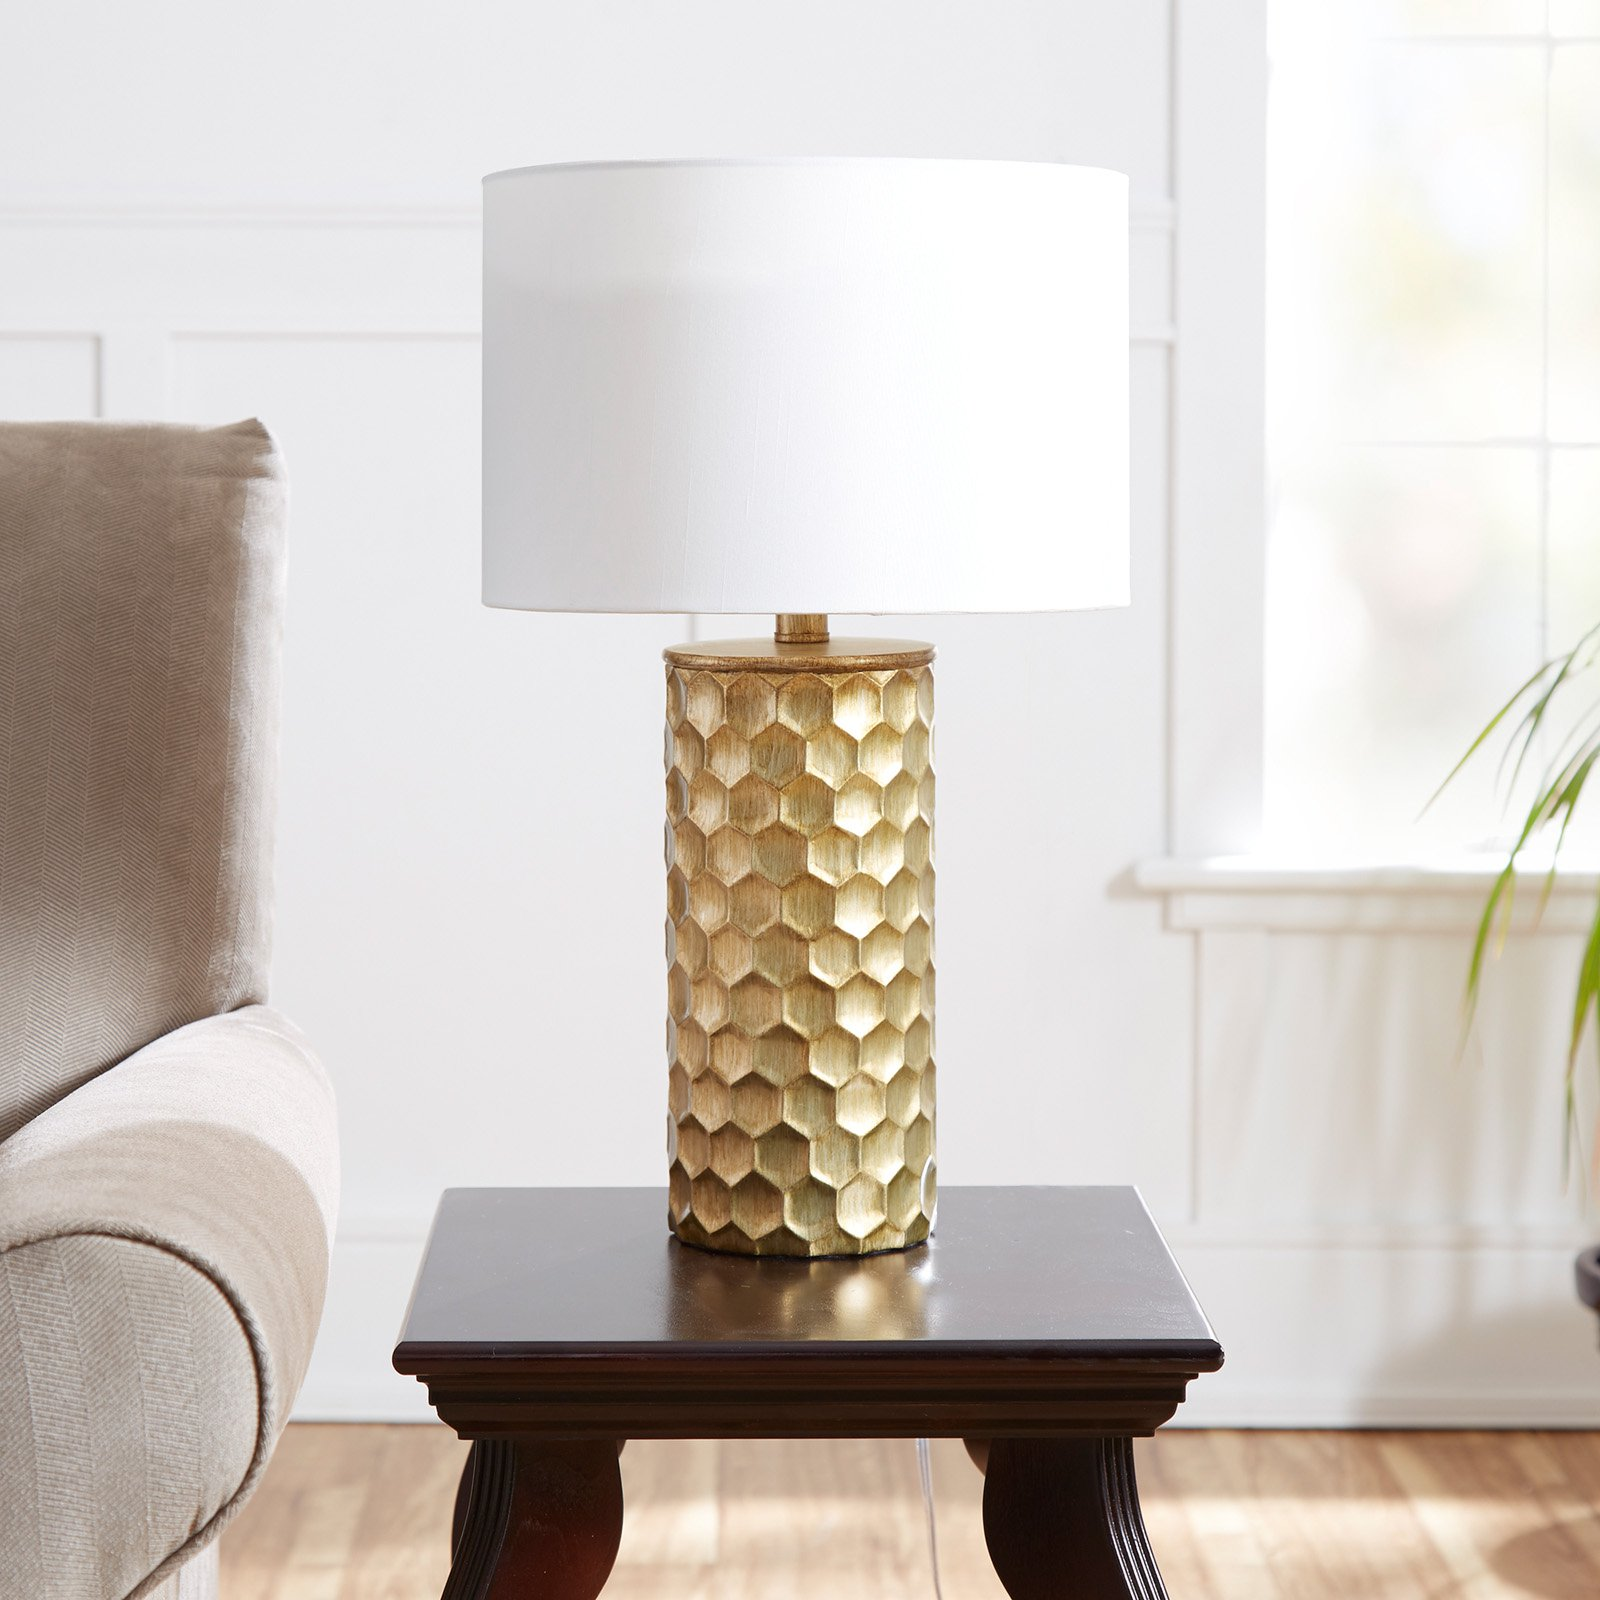 The Hive Gilded Table Lamp with Shade, CFL Bulb Included